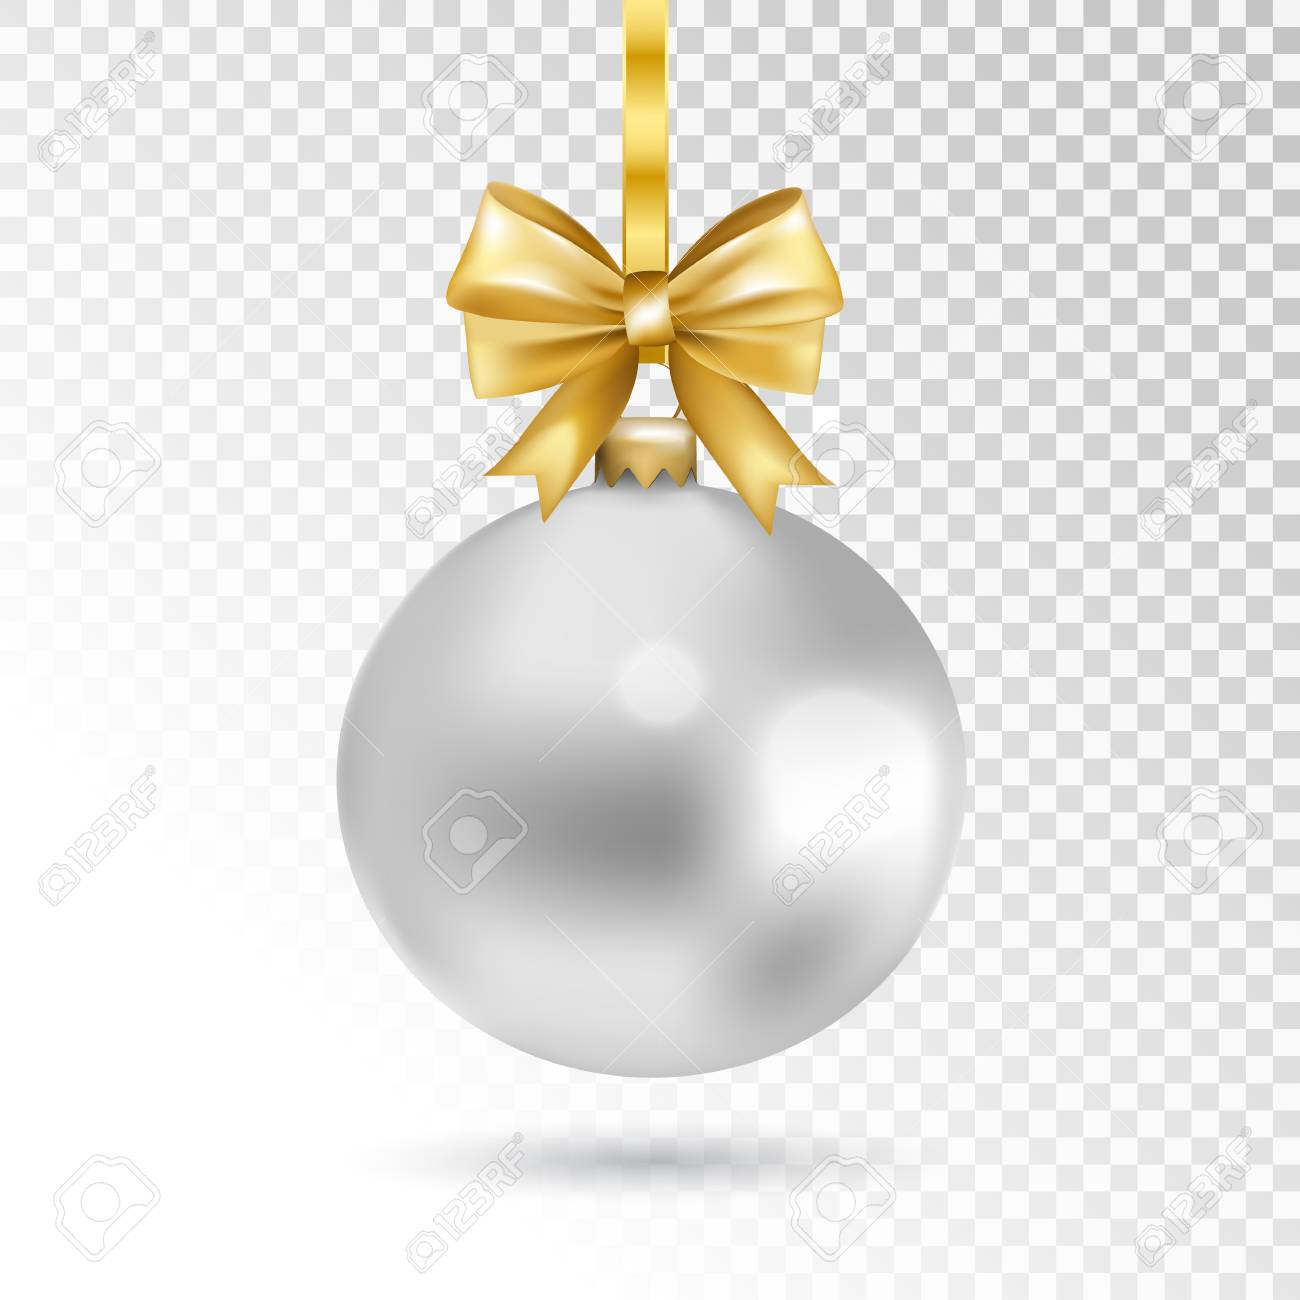 Silver Christmas Ball With Gold Bow Isolated On Transparent Background Holiday Toy For Fir